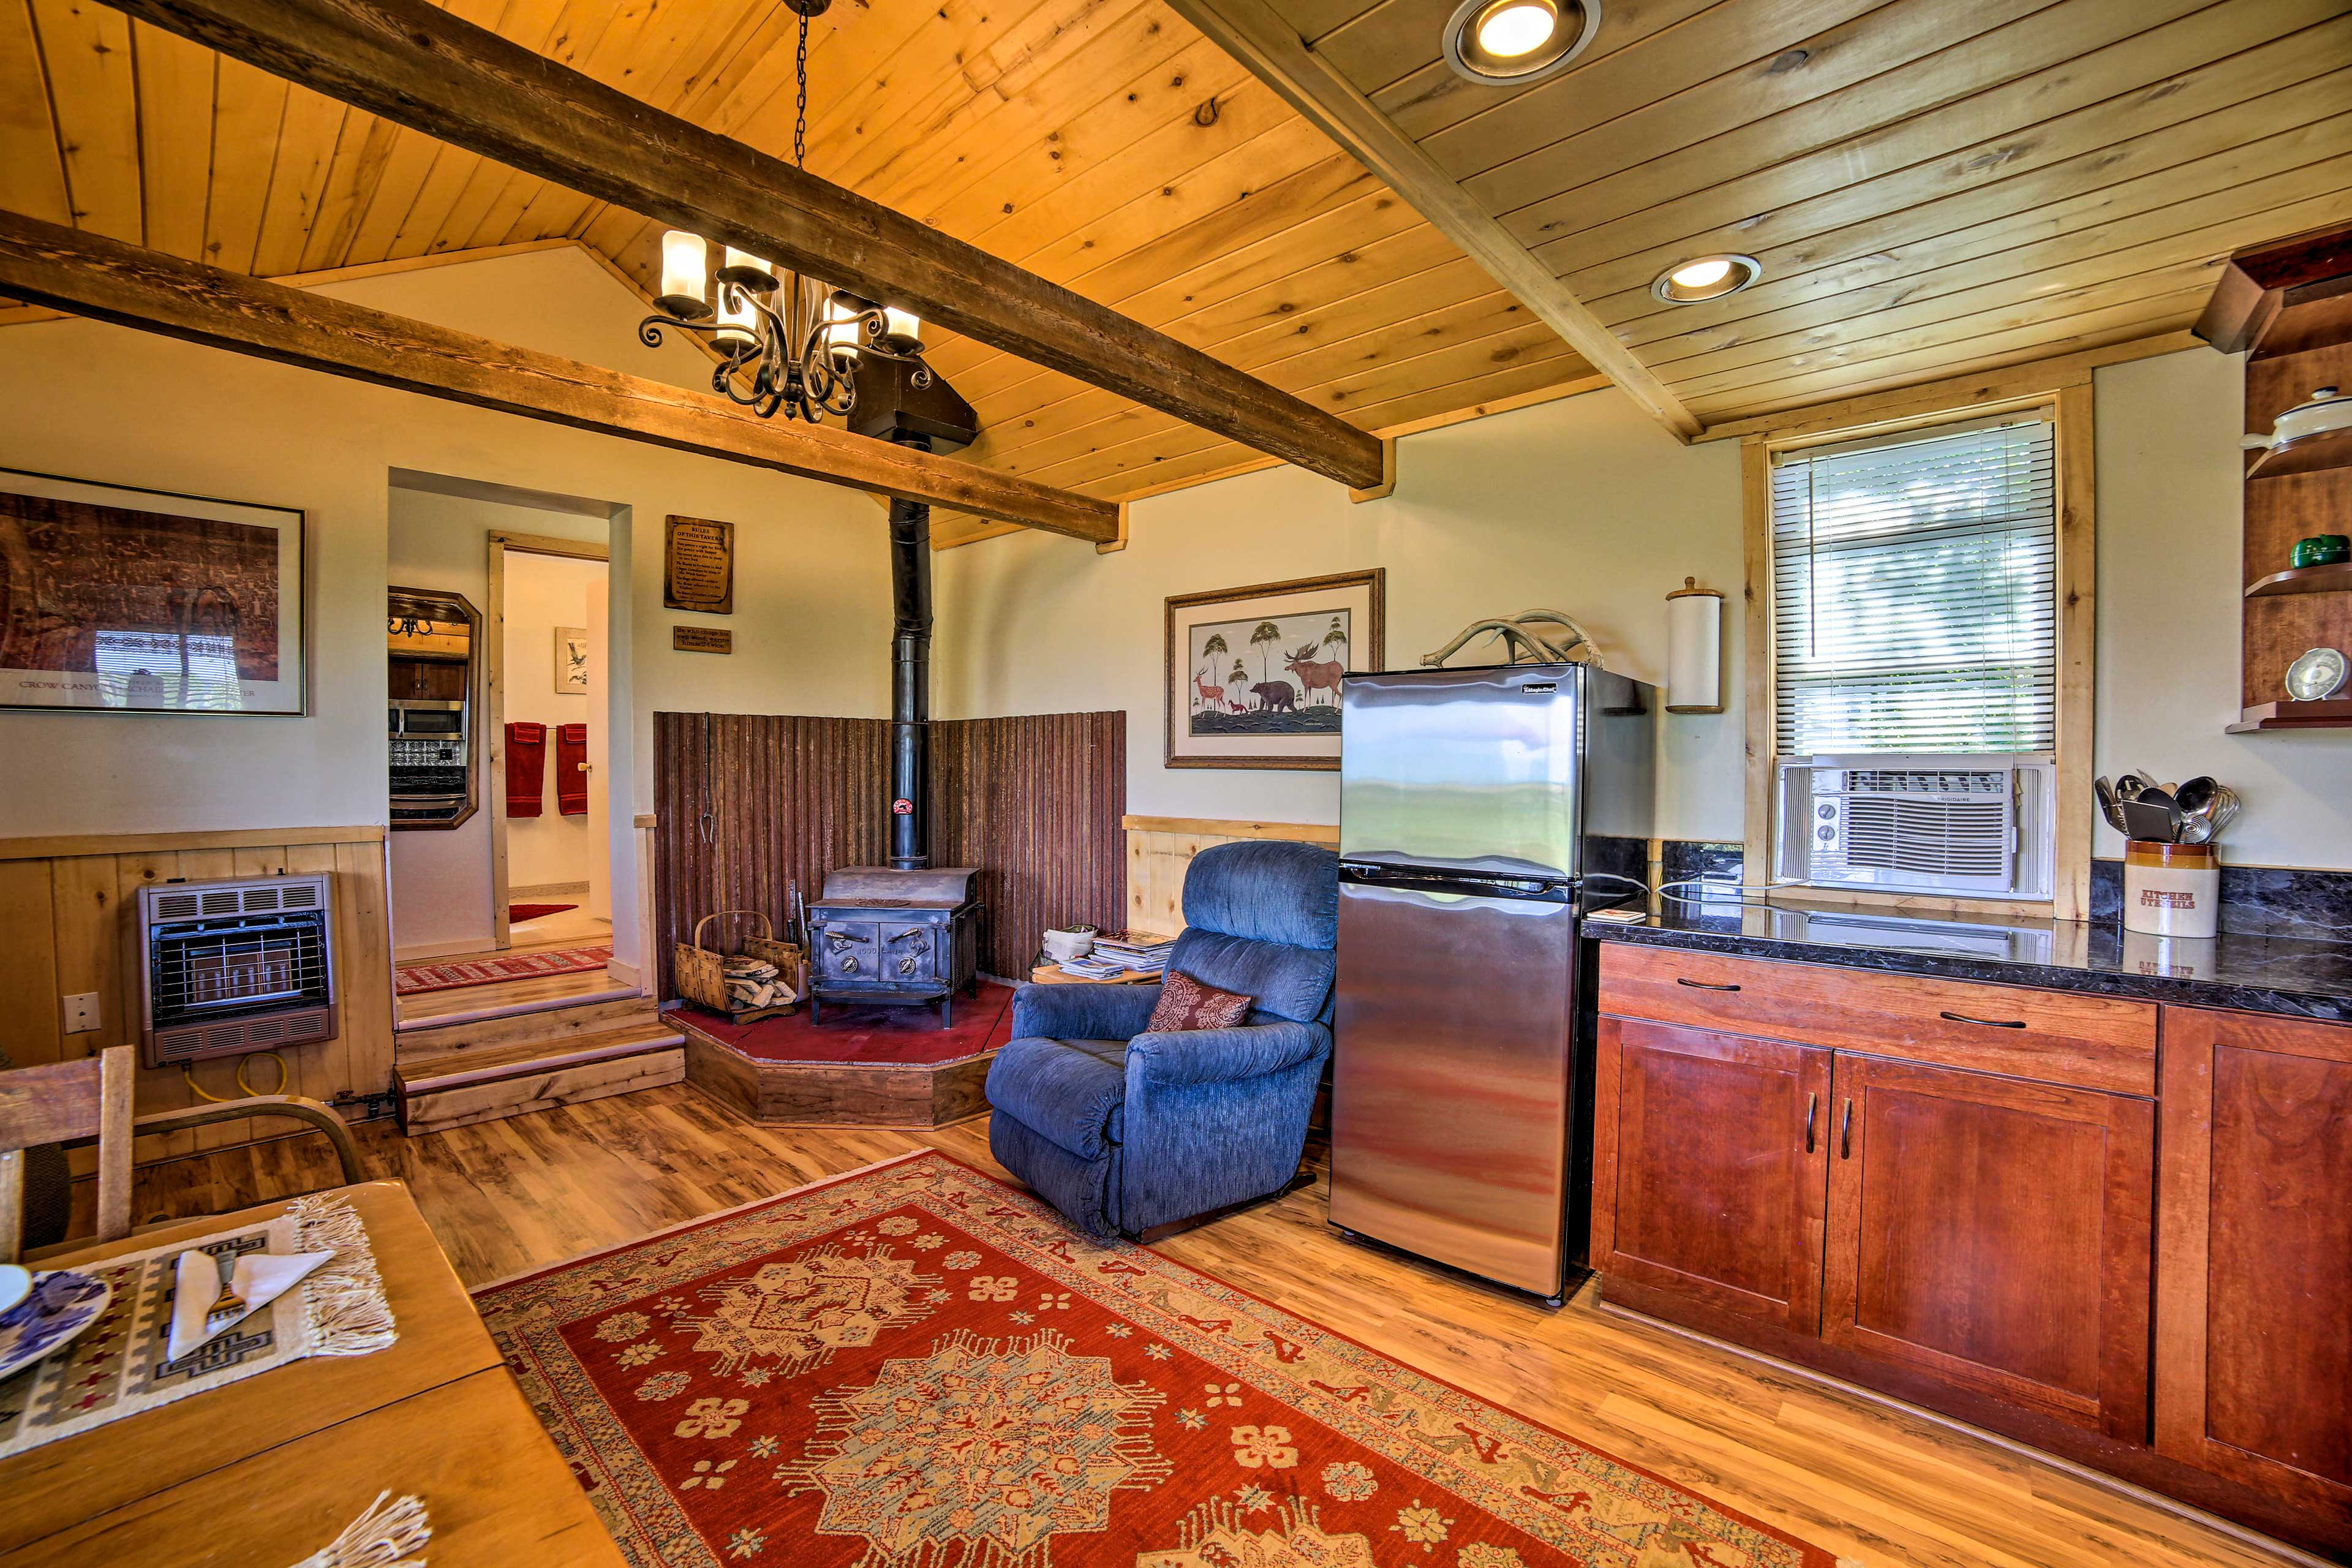 The hardwood floors add a rustic charm to the home.